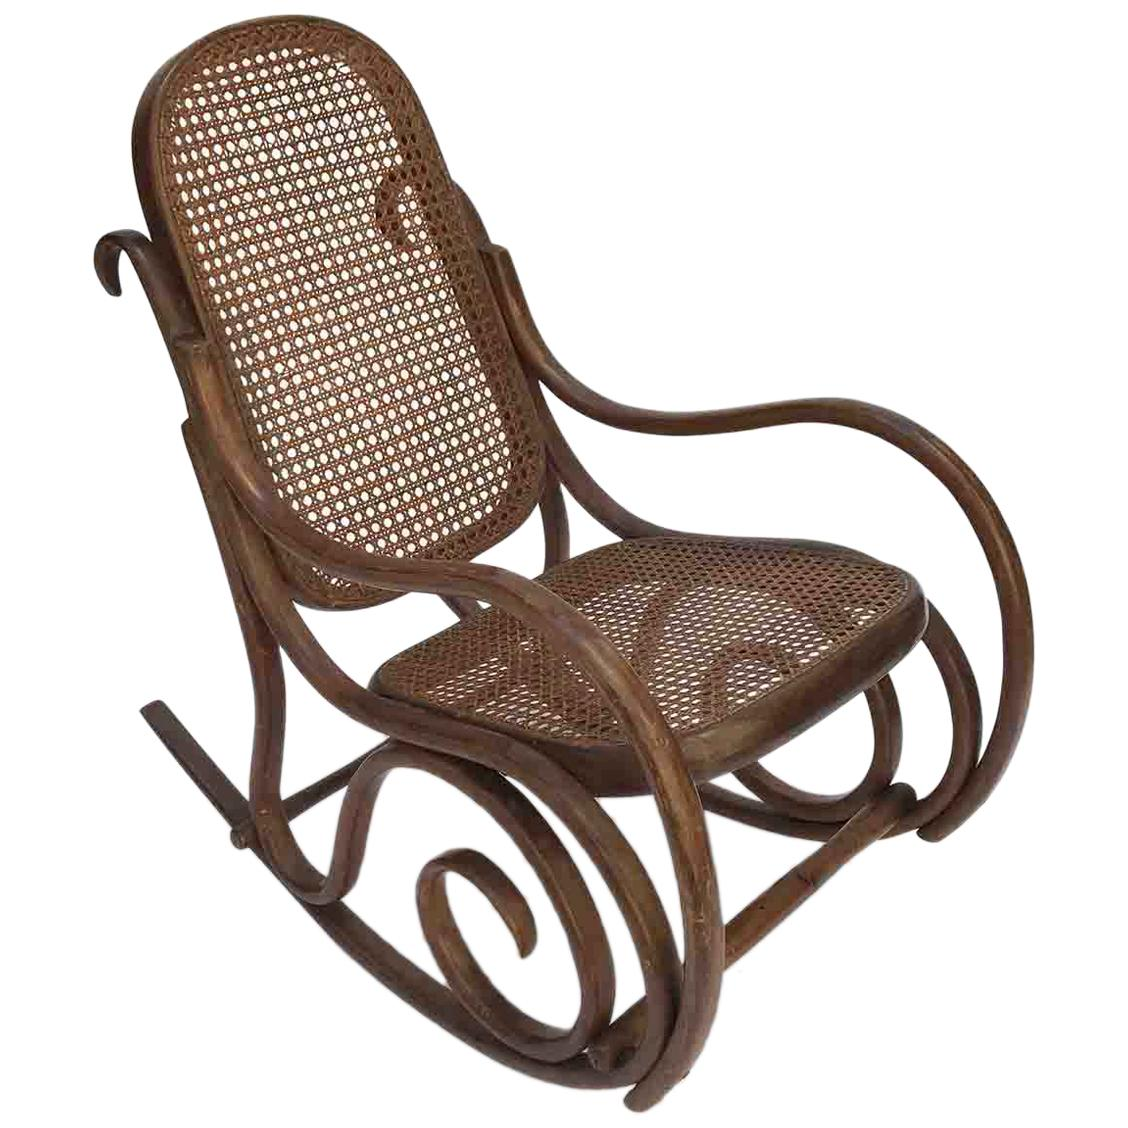 20th Century Thonet Style Beech Bentwood Child Rocking Chair with Cane